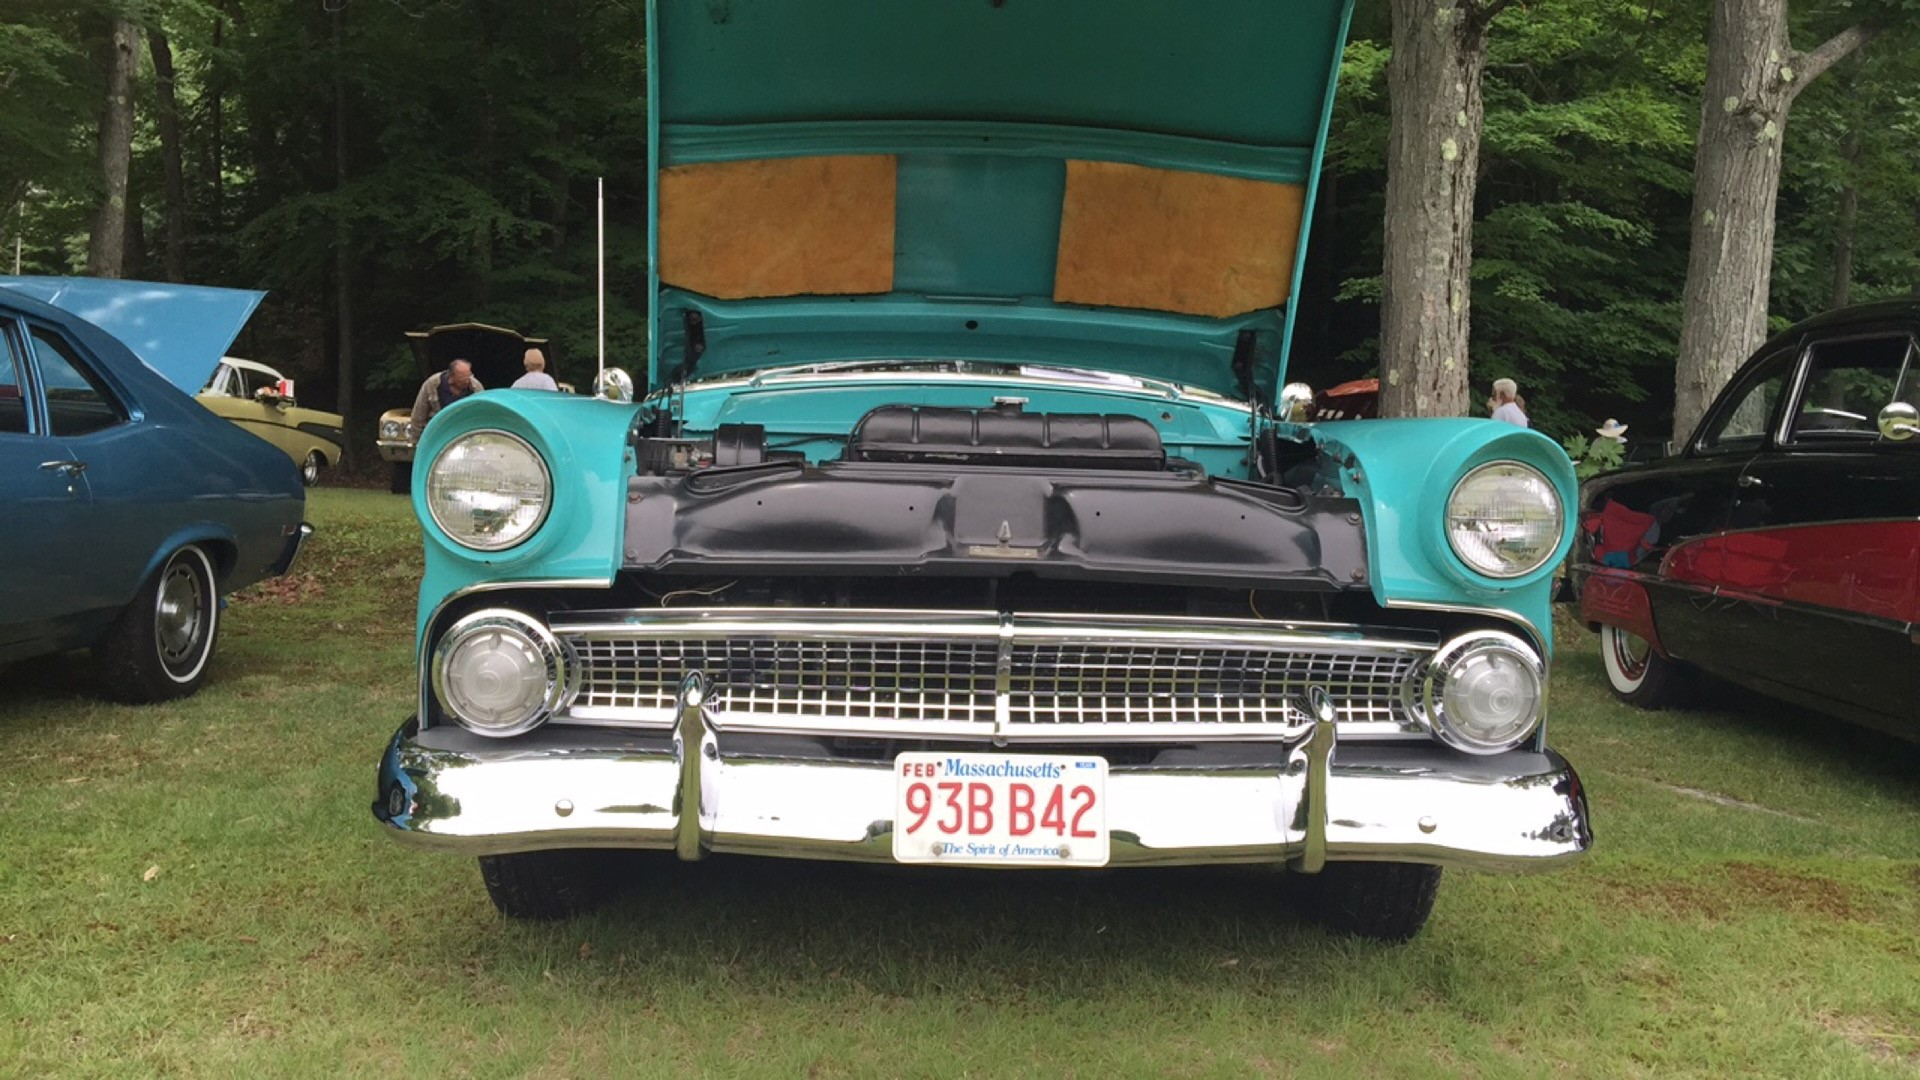 Hot Rods For Heroes 2015 │ Gallery Bertera Auto Group Blogs